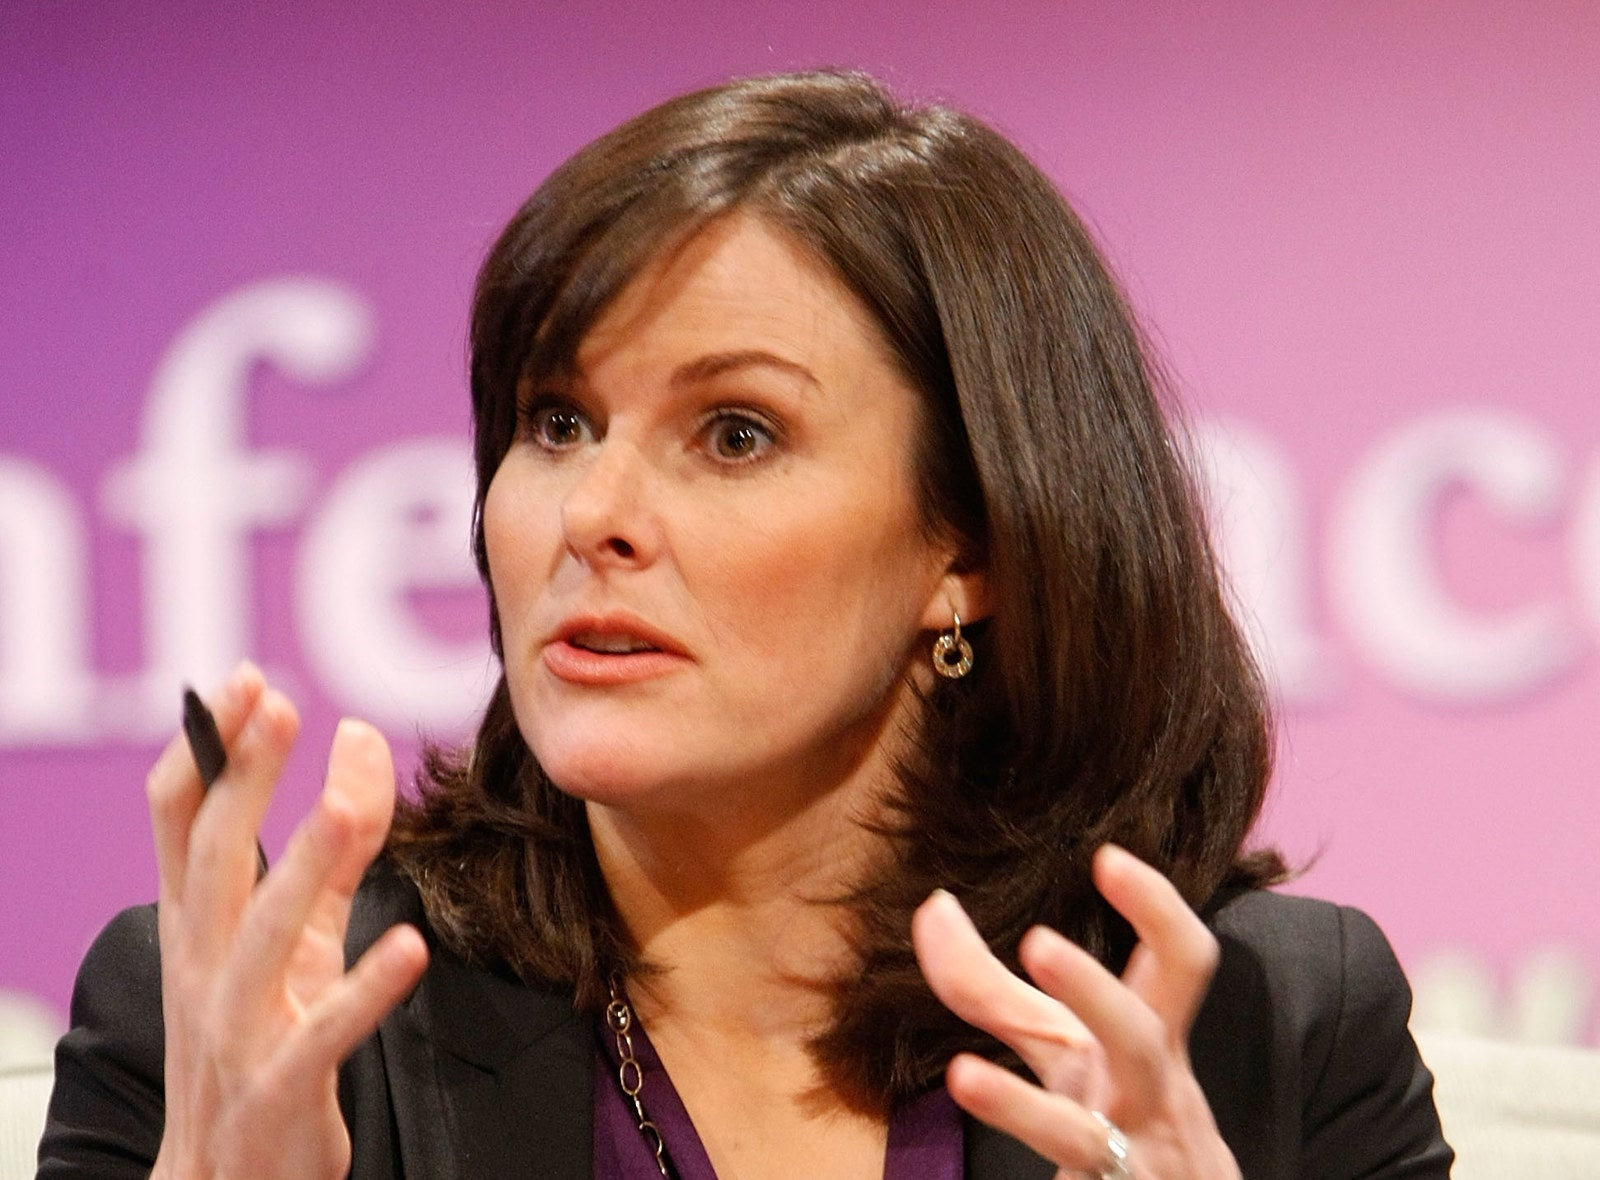 Facebook's New Head Of News Has Close Ties To Conservative Politics